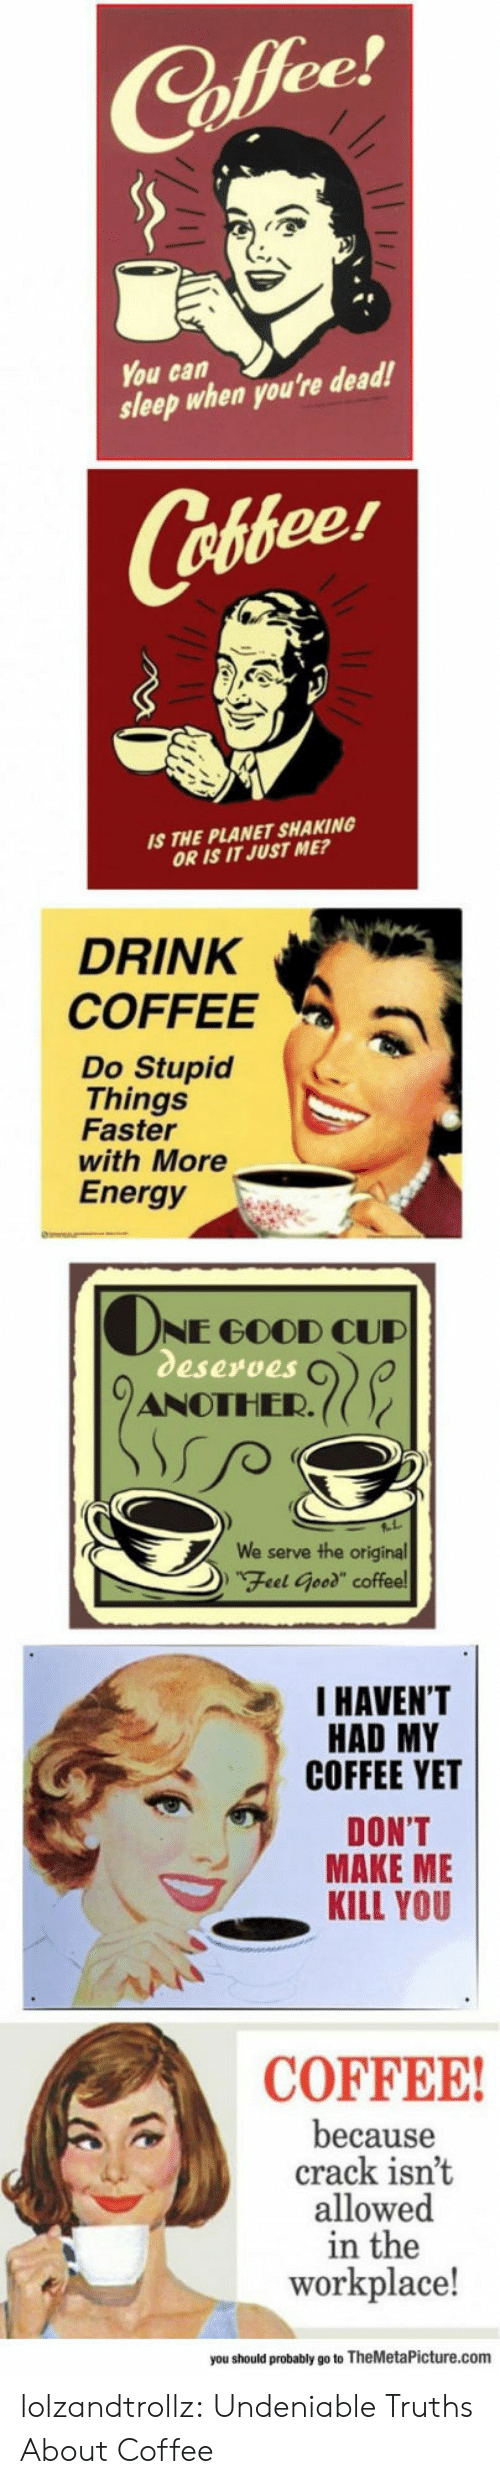 """Is It Just Me: ее  You can  sleep when you're dead!  Cofeer  S THE PLANET SHAKING  OR IS IT JUST ME?  DRINK  COFFEEa  Do Stupid  Things  Faster  with More  Energy  NE GOOD CUD  eserves  ANOTHER.((  serve the original  DFeel Geed"""" coffee  We  I HAVEN'T  HAD MY  COFFEE YET  DON'T  MAKE ME  KILL YOU  COFFEE  because  crack isnt  allowed  in the  workplace!  you should probably go to TheMetaPicture.com lolzandtrollz:  Undeniable Truths About Coffee"""